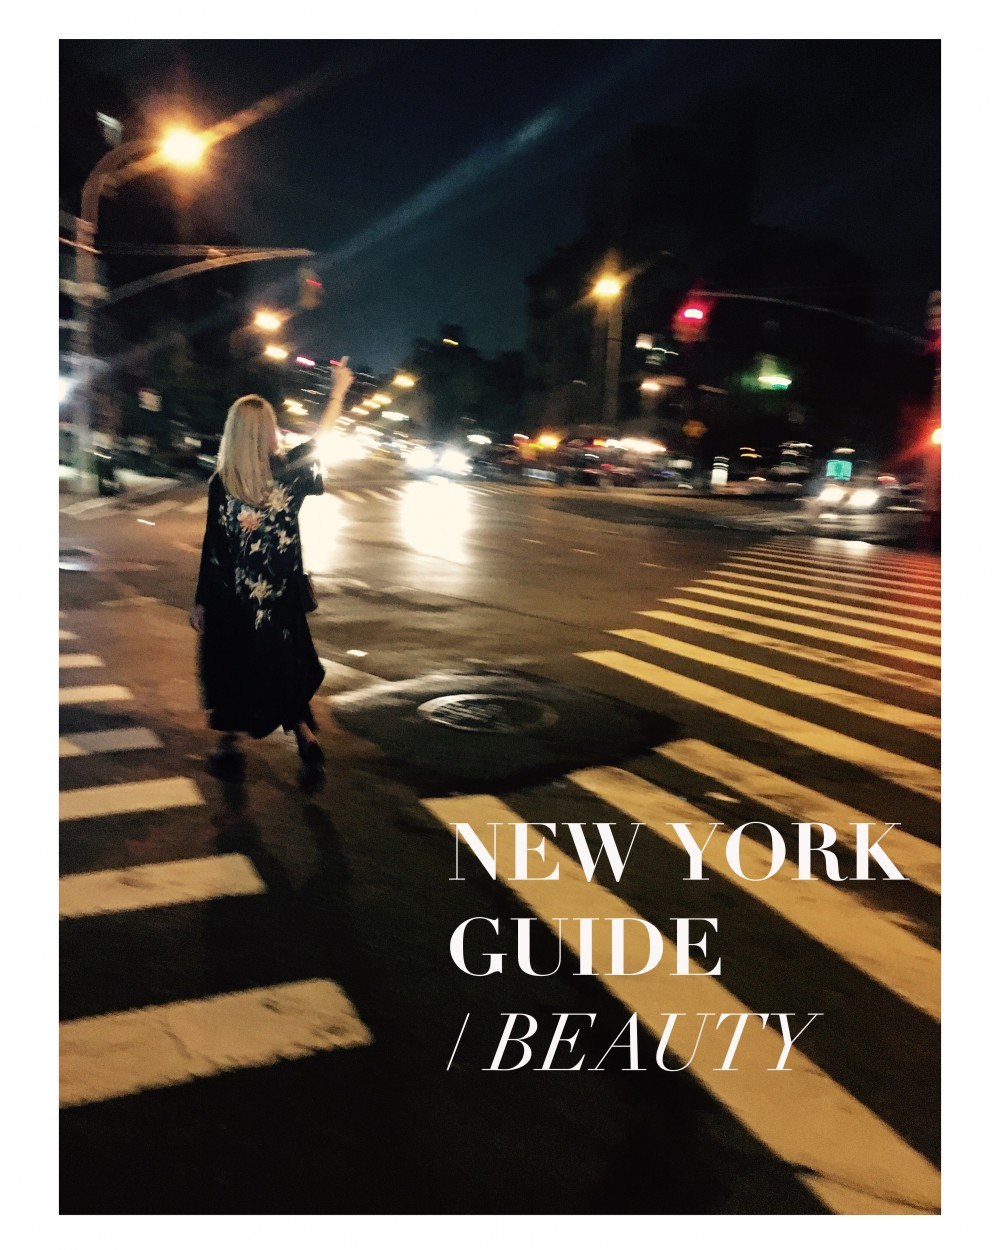 NEW YORK BEAUTY GUIDE